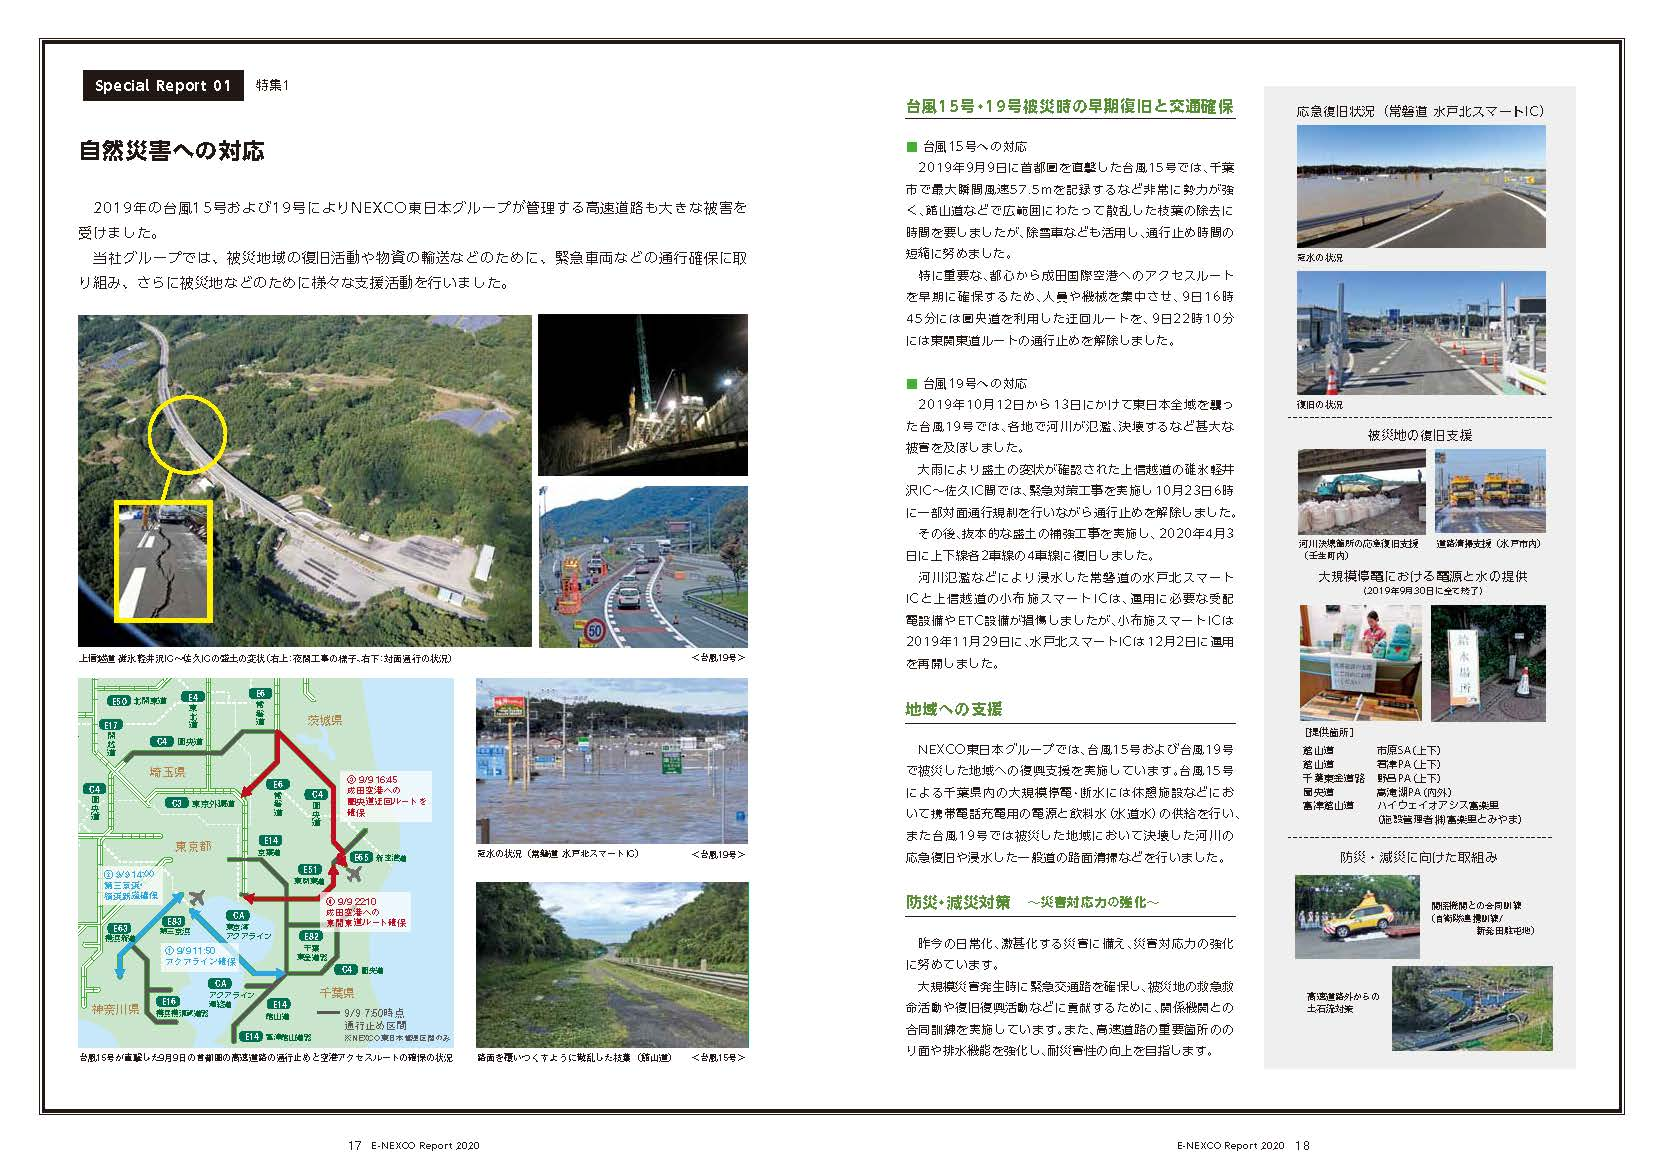 Feature 01 Response to natural disasters Image link to [PDF: 1MB]